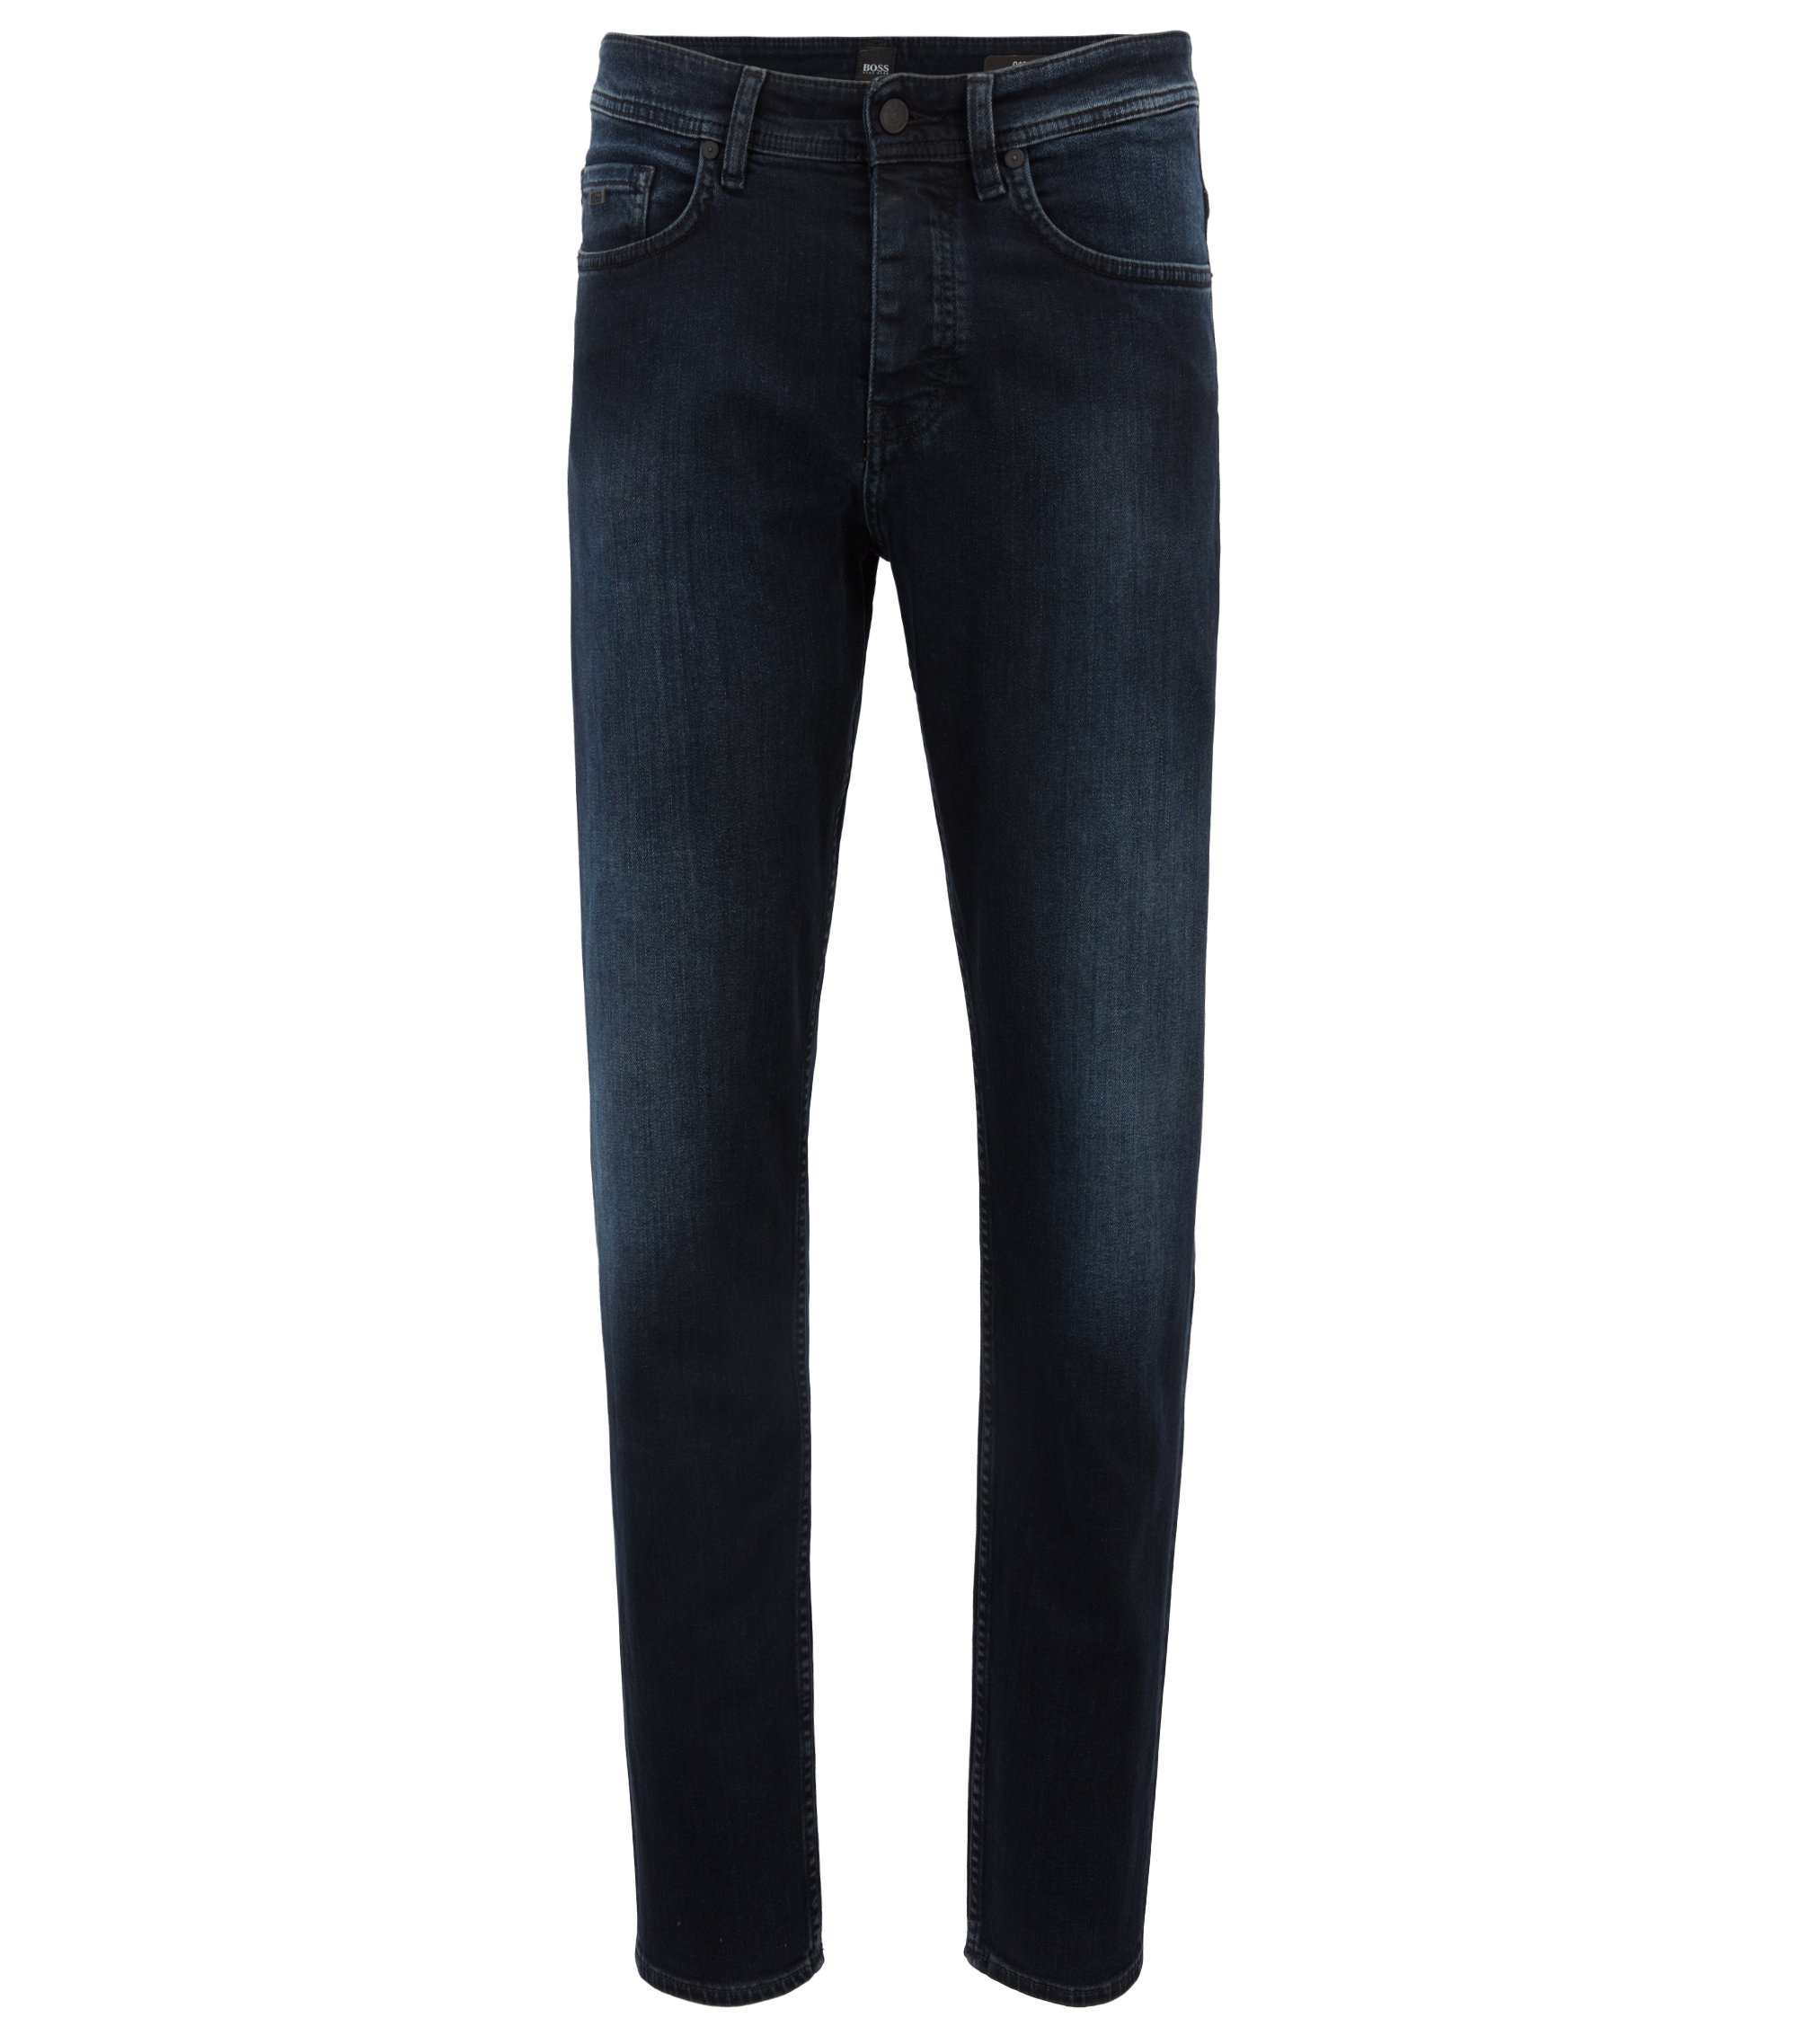 Jeans tapered fit in denim elasticizzato sovratinto blu-nero, Blu scuro